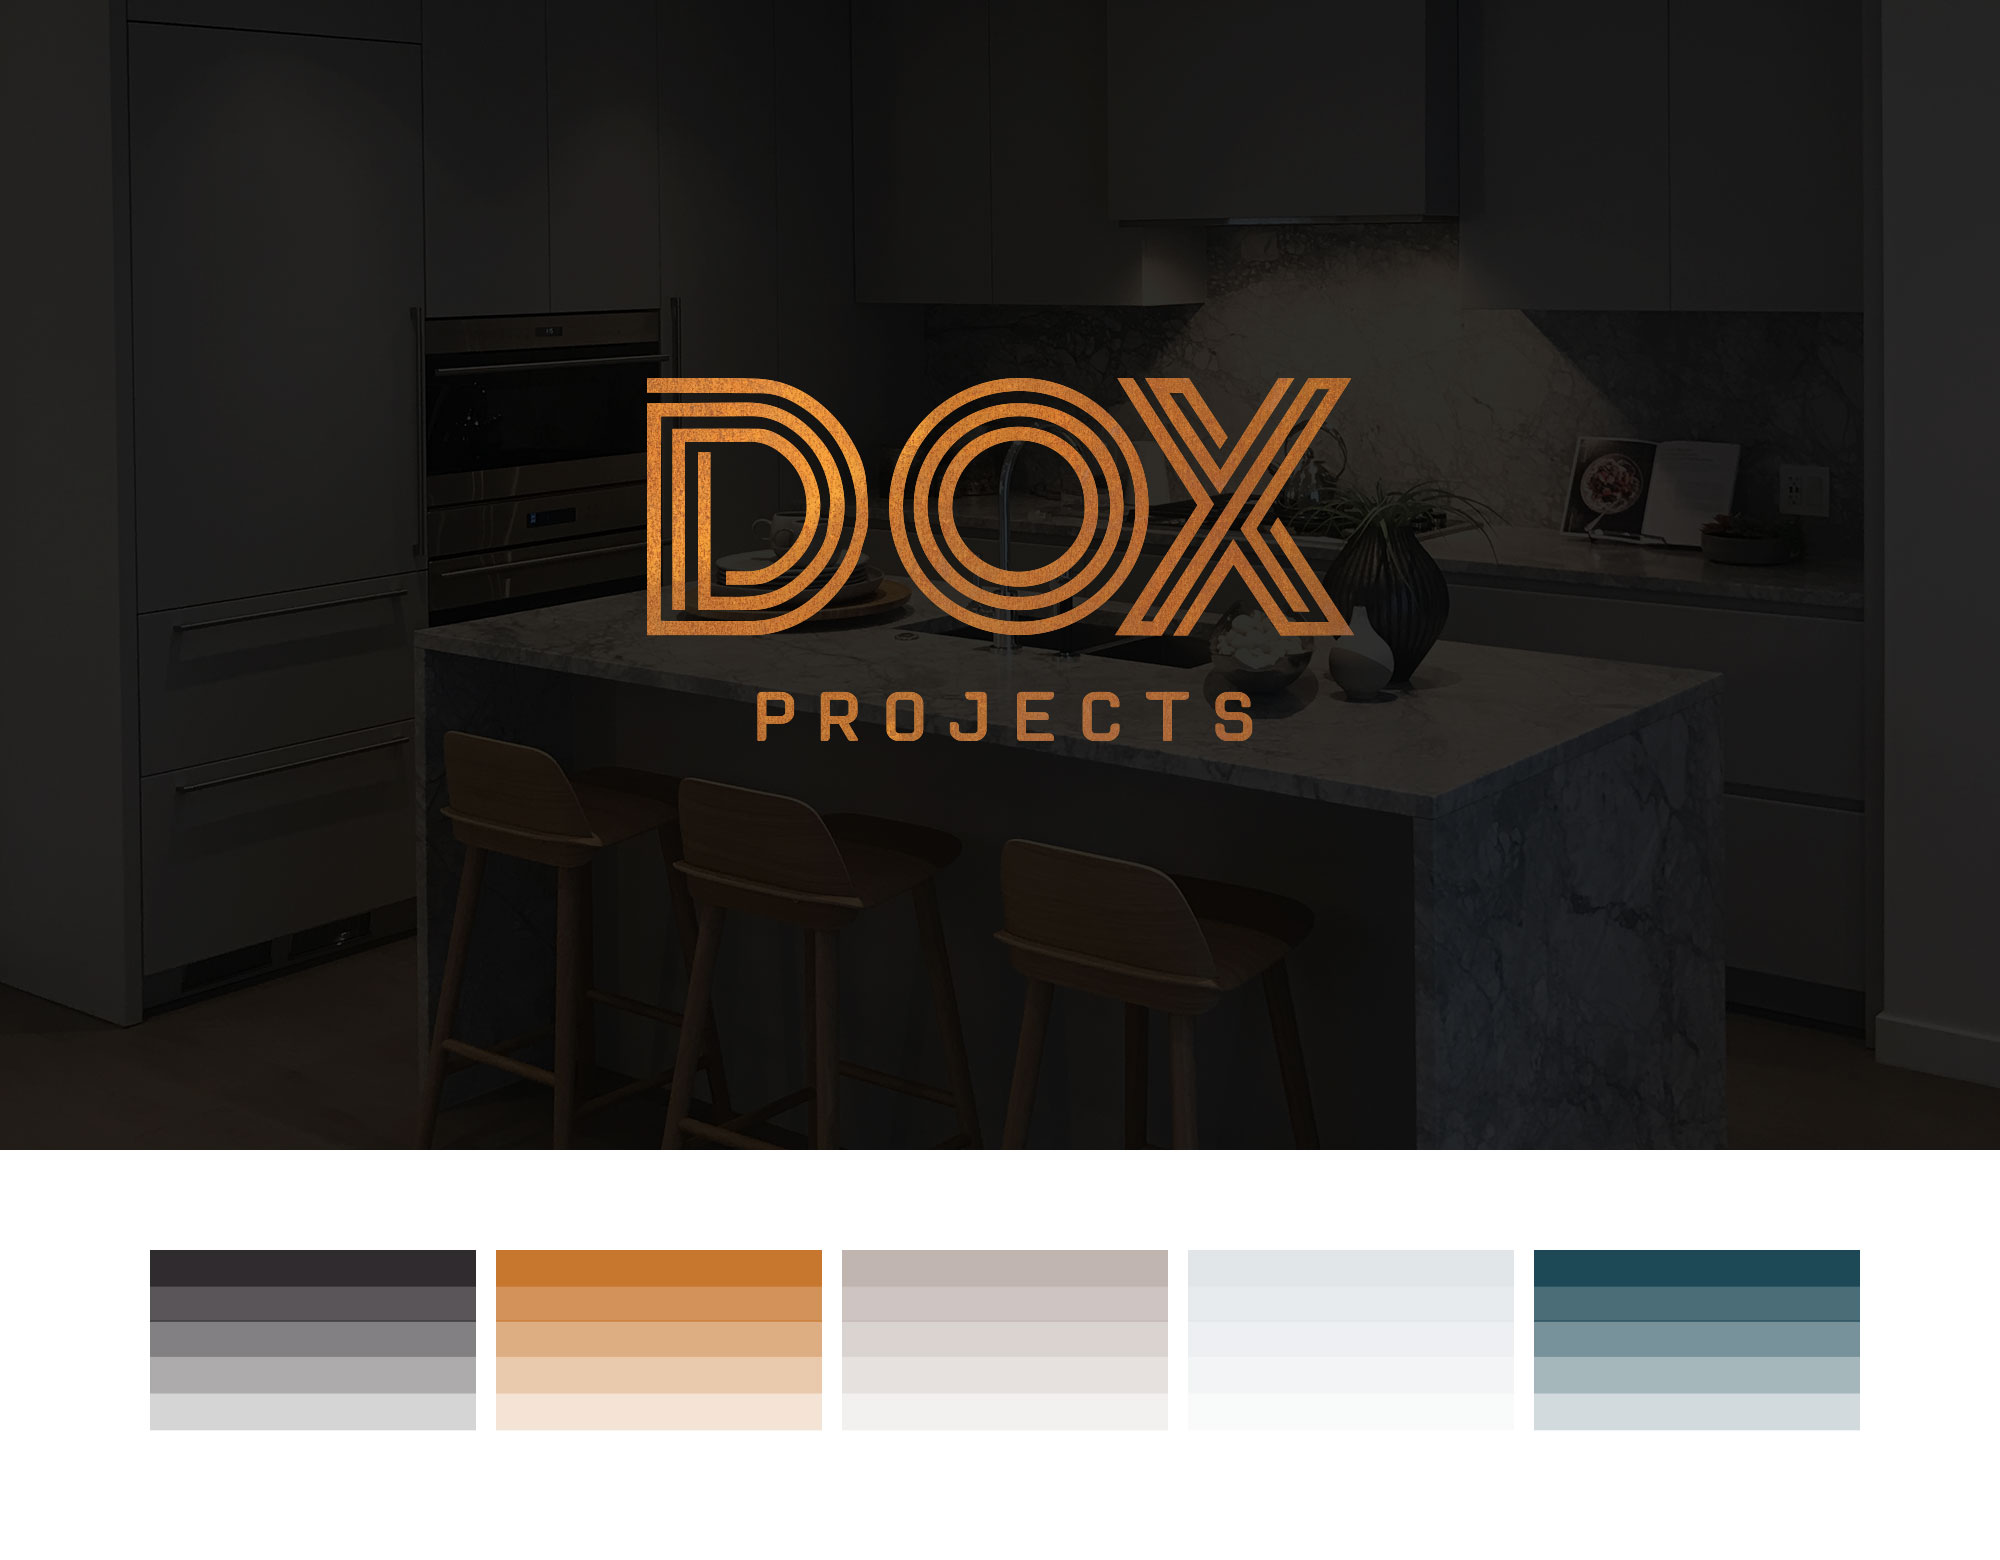 dox-projects-logo